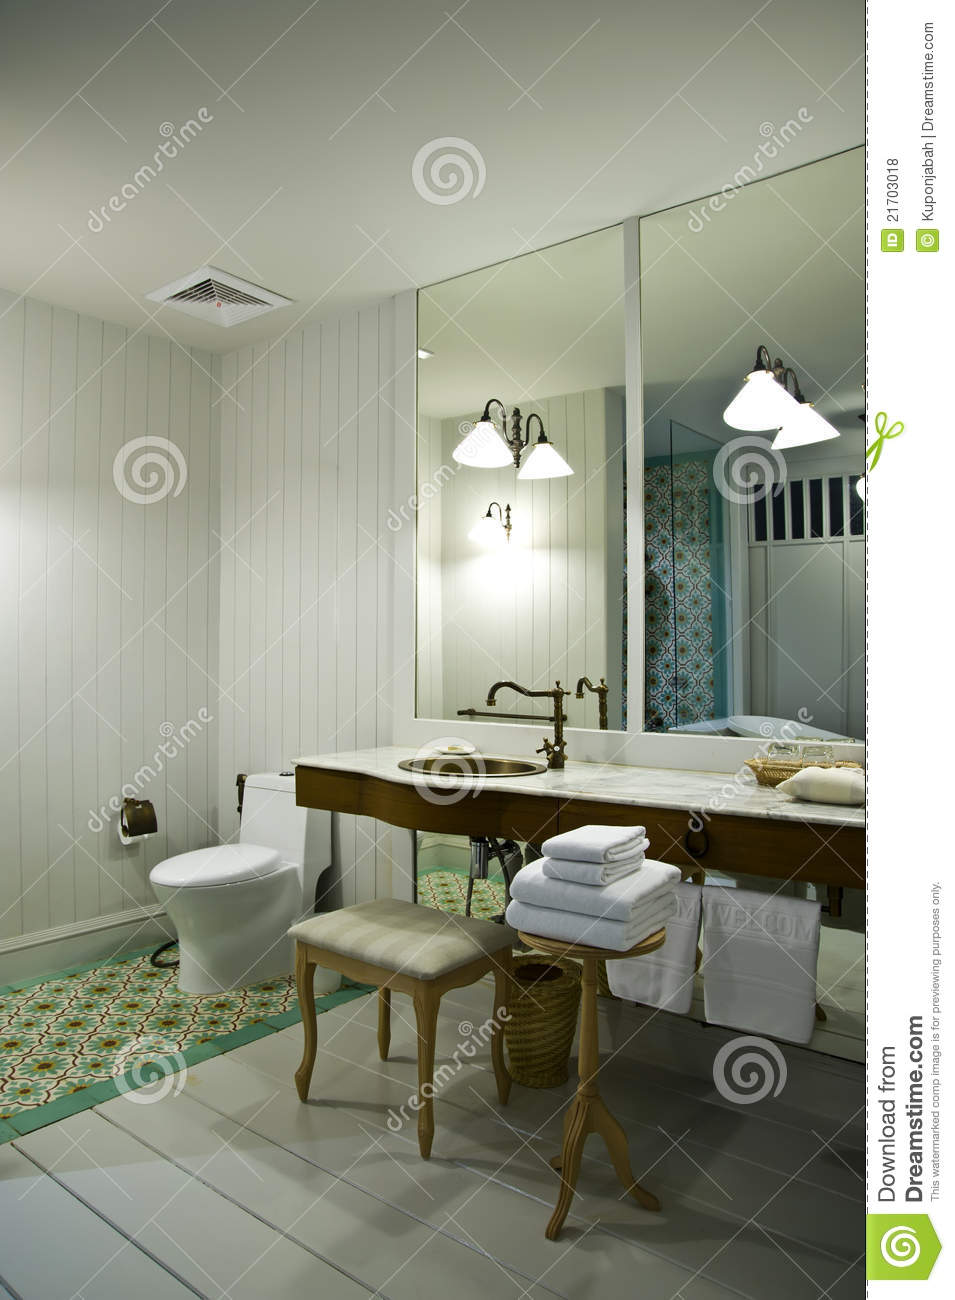 Decorated In Bathroom Royalty Free Stock Photos Image 21703018